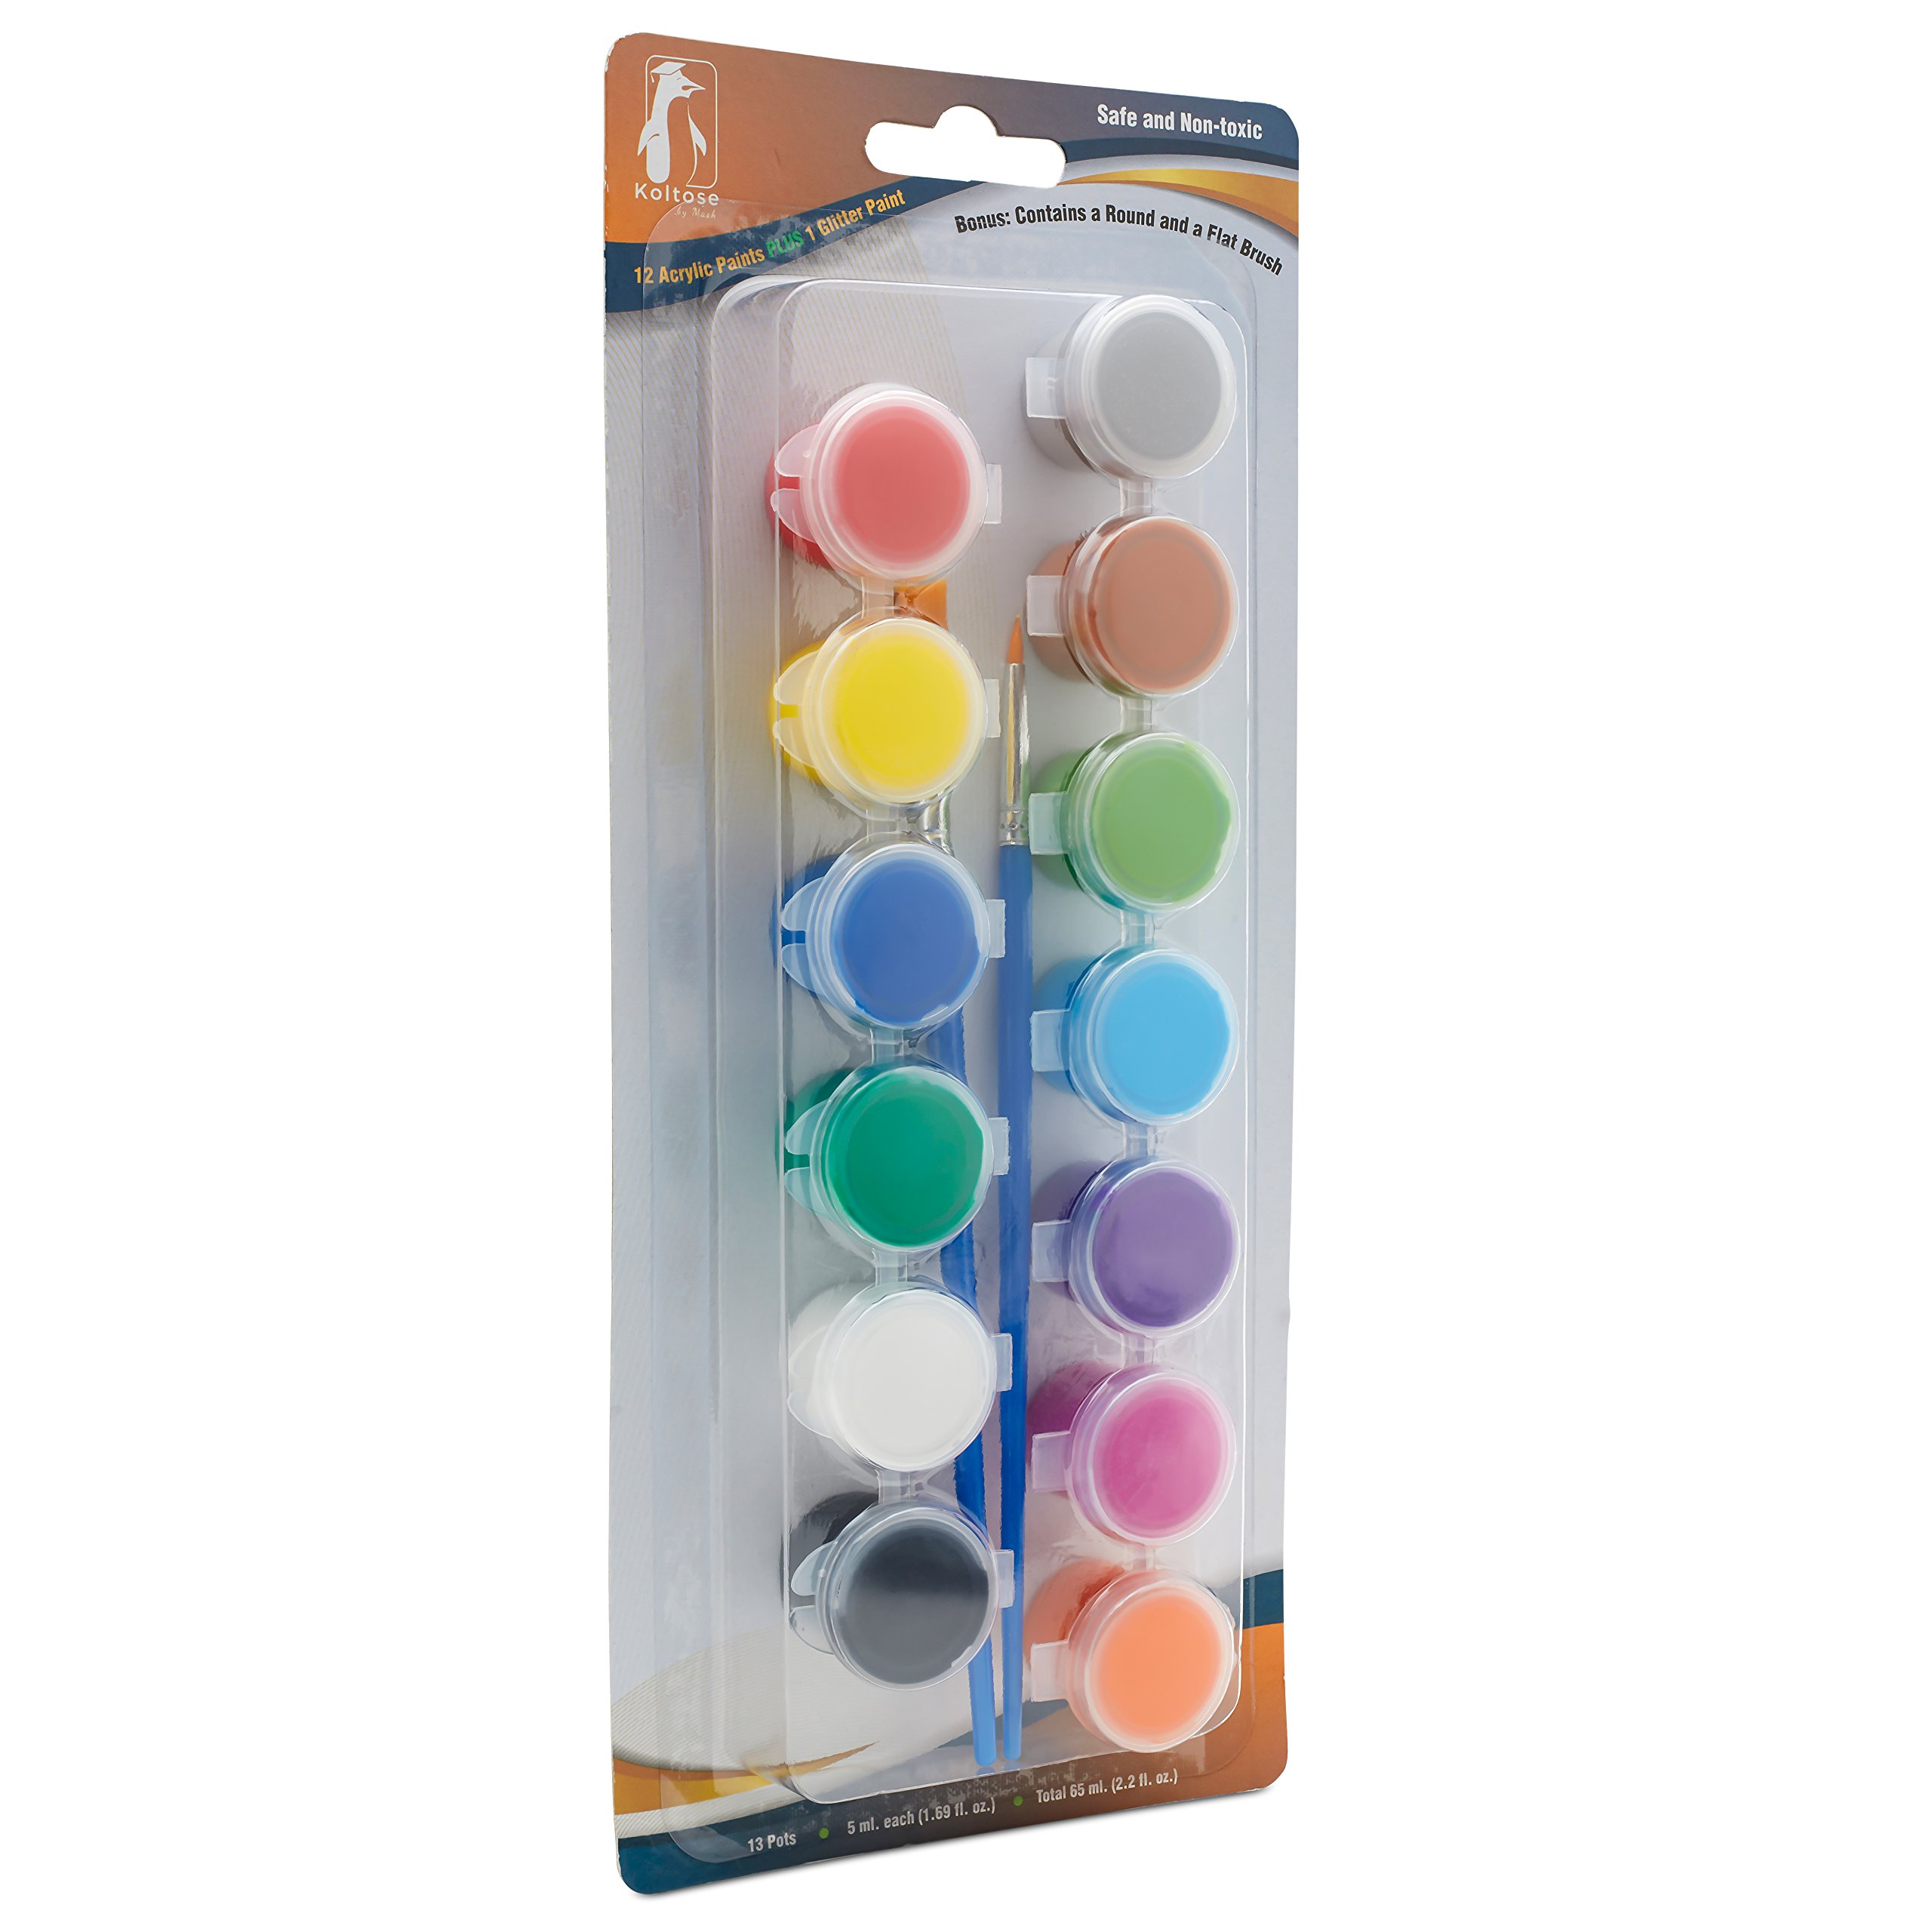 Acrylic Paint Pots Set, 12 Colored Paint Strip Plus 1 Glitter Paint Pot 1 Flat Brush and 1 Round Brush (13 Paints, 2 Brushes Total) Arts and Crafts Painting Supplies Kit. 3 Pack